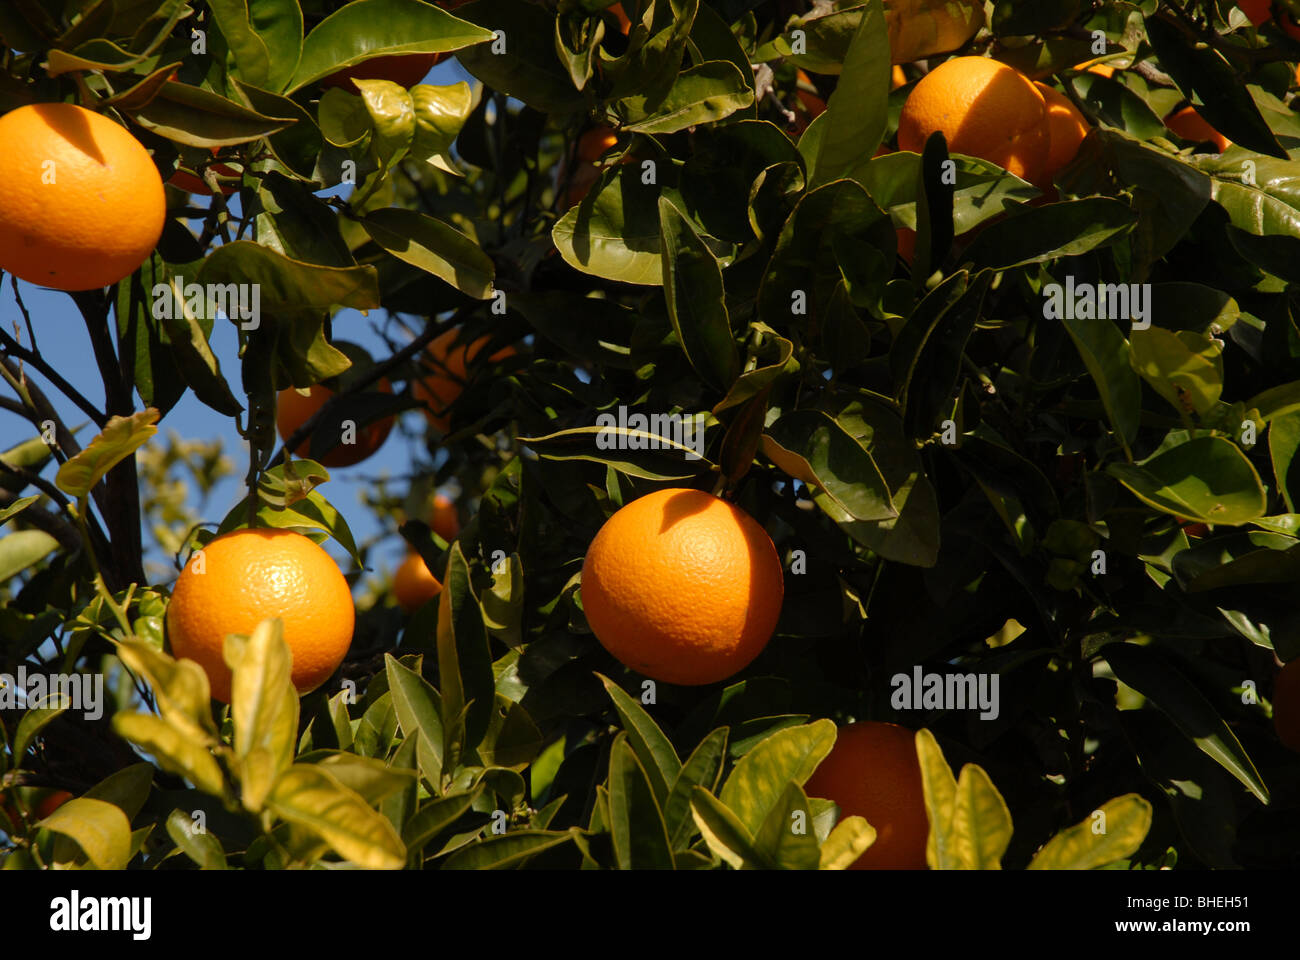 close-up of ripe oranges on tree, Javea / Xabia, Alicante Province, Comunidad Valenciana, Spain Stock Photo